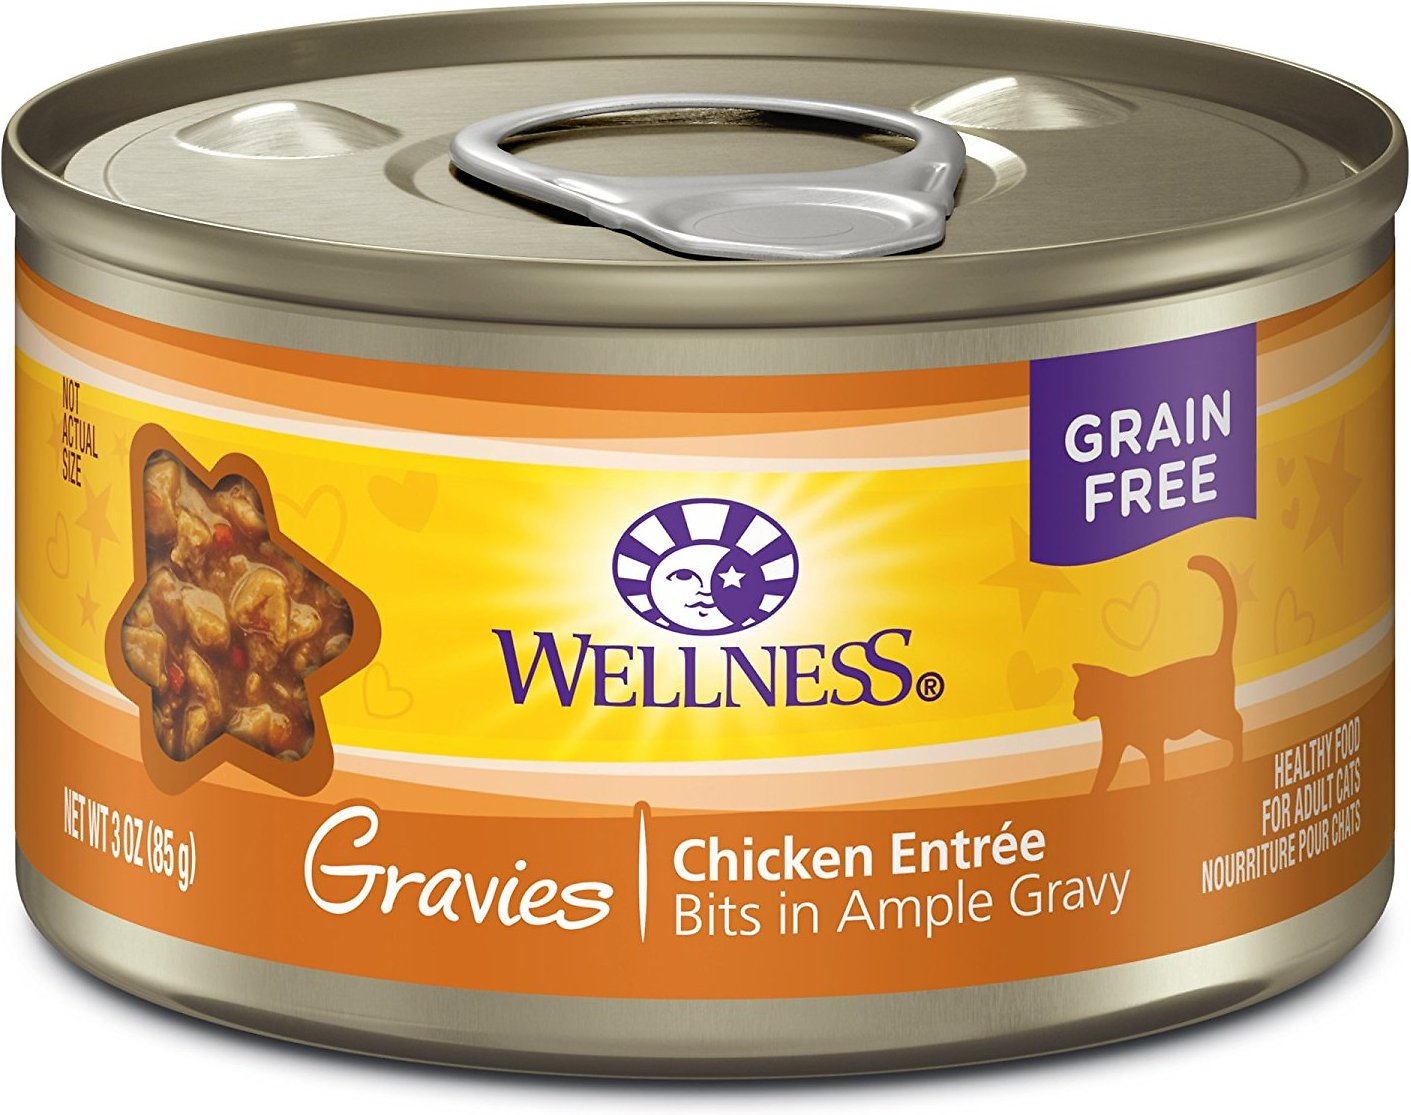 Wellness Natural Grain-Free Gravies Chicken Dinner Canned Cat Food, 5.5-oz